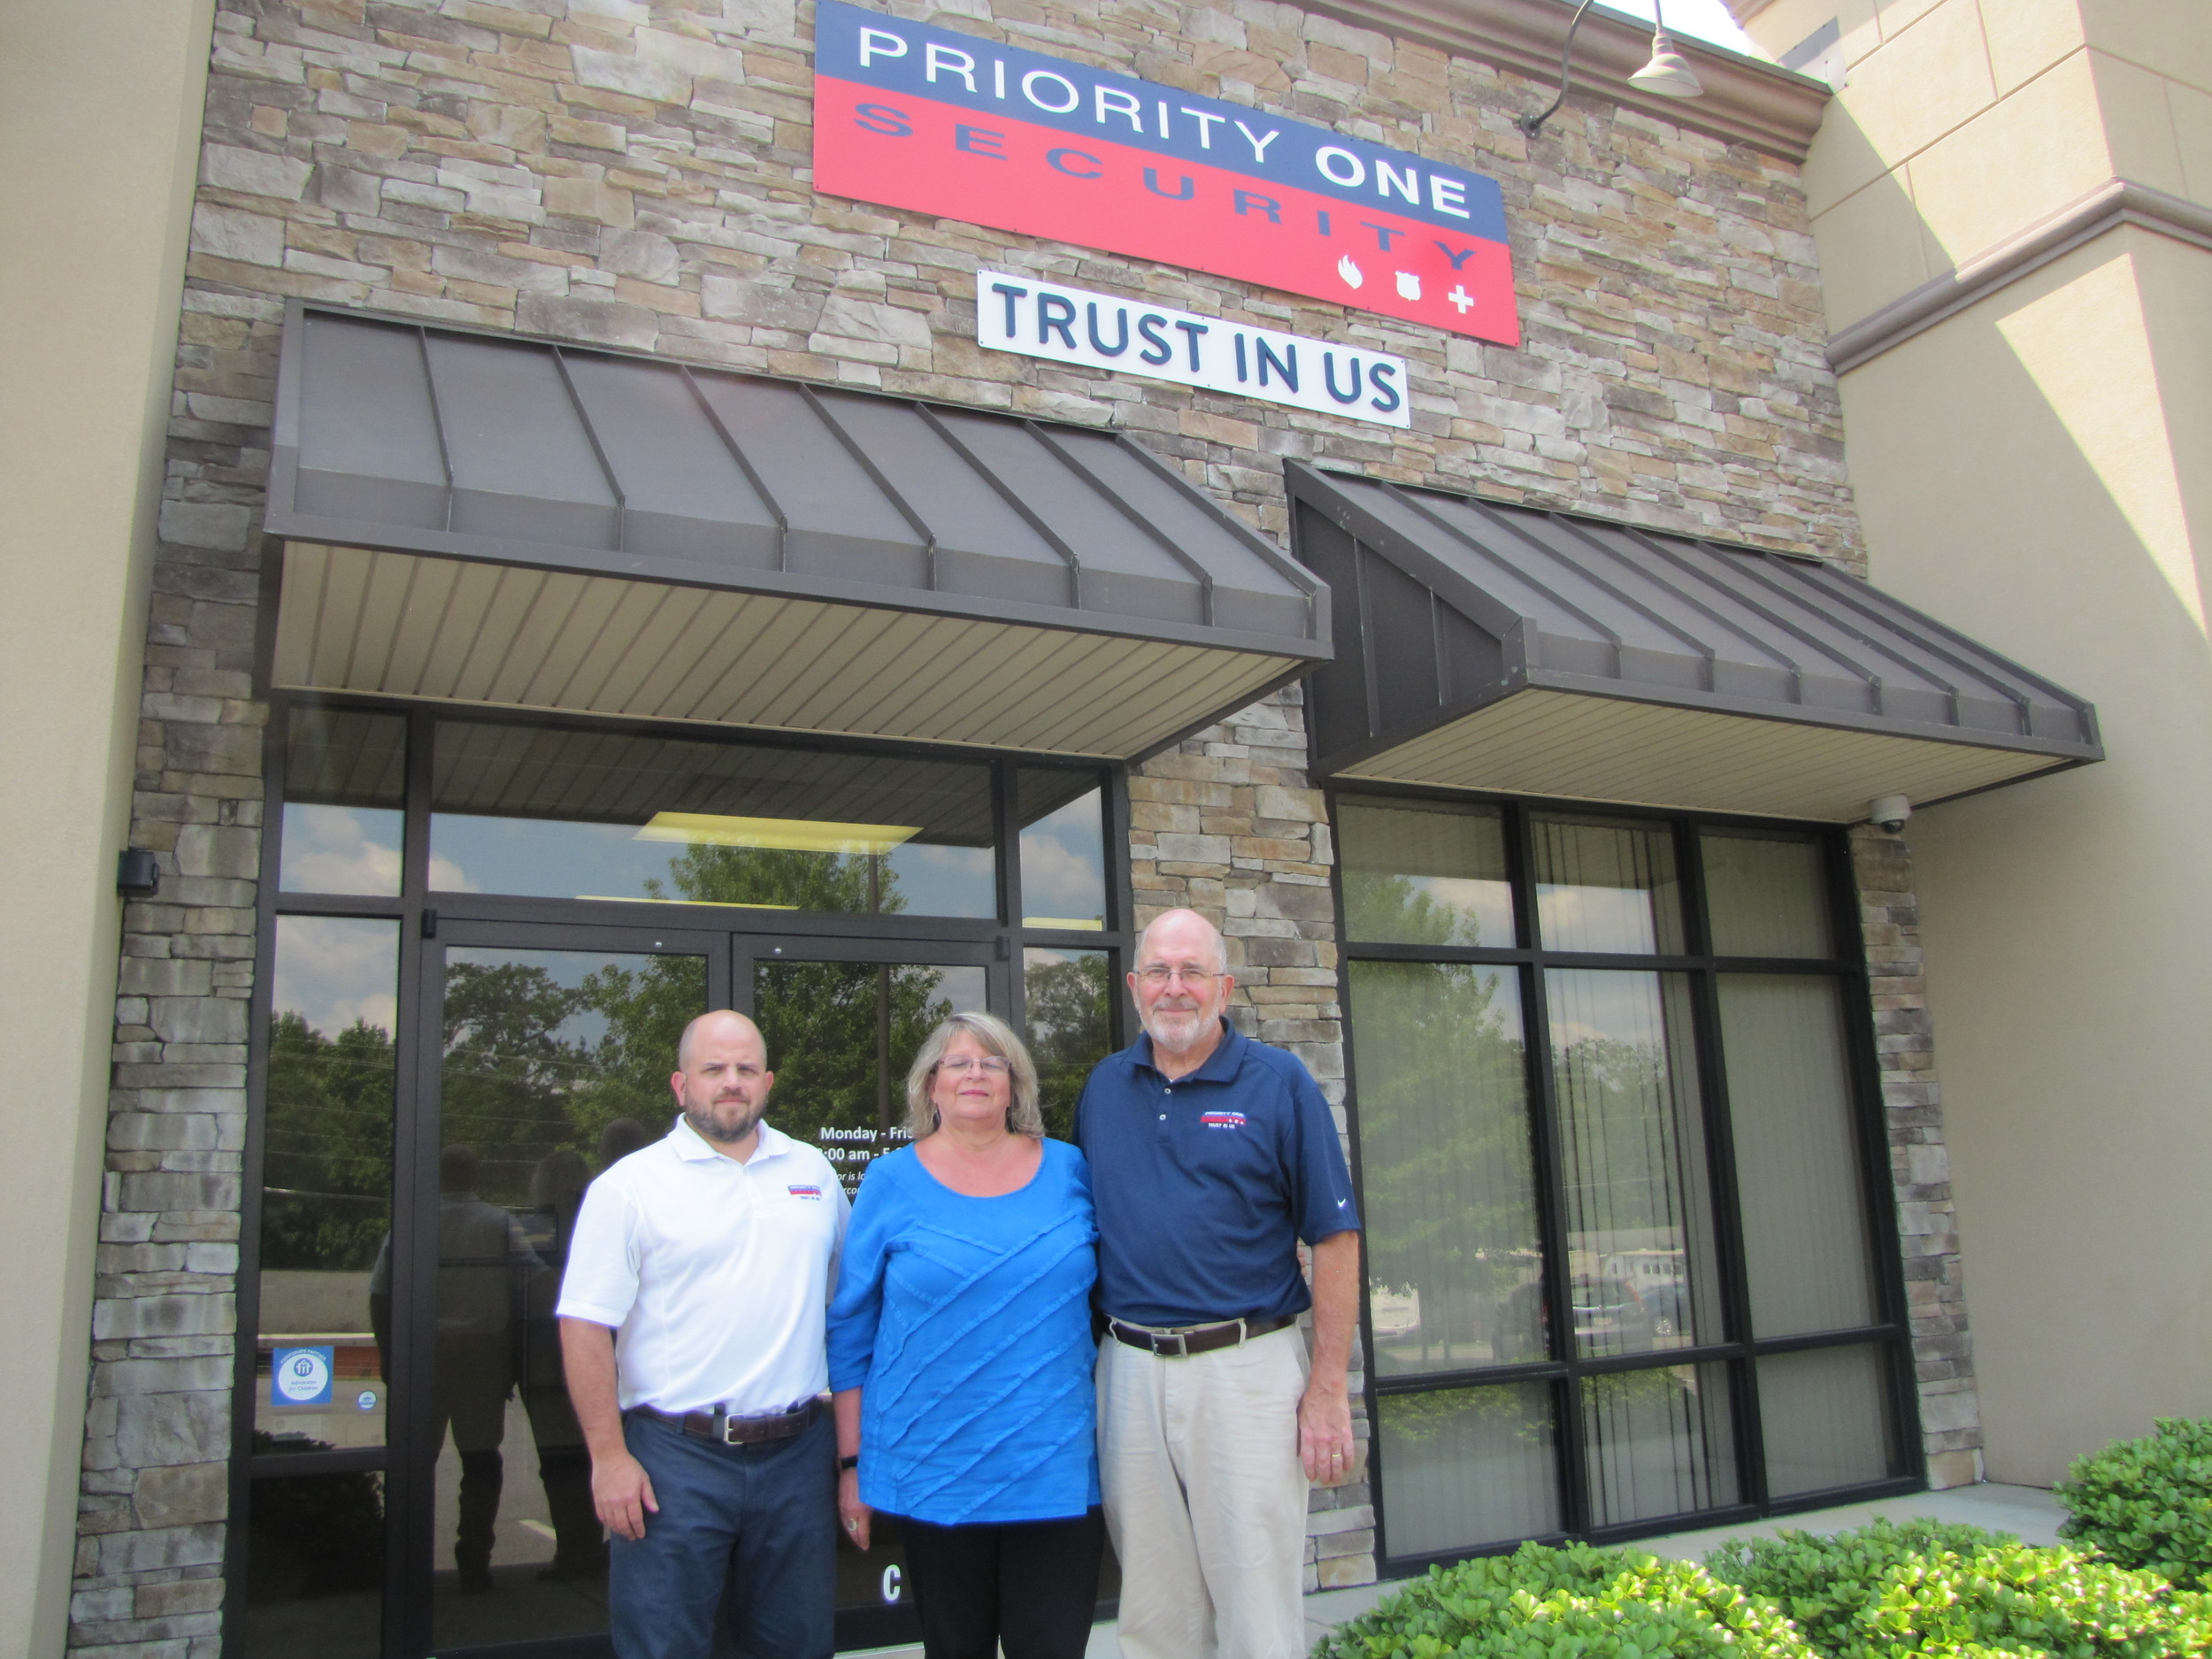 From left, Fleetwood Security personnel Evan Fleetwood, Jessica Fleetwood and Billy Fleetwood stand underneath their new corporate signage. Their business merged with Priority One Security earlier this year.